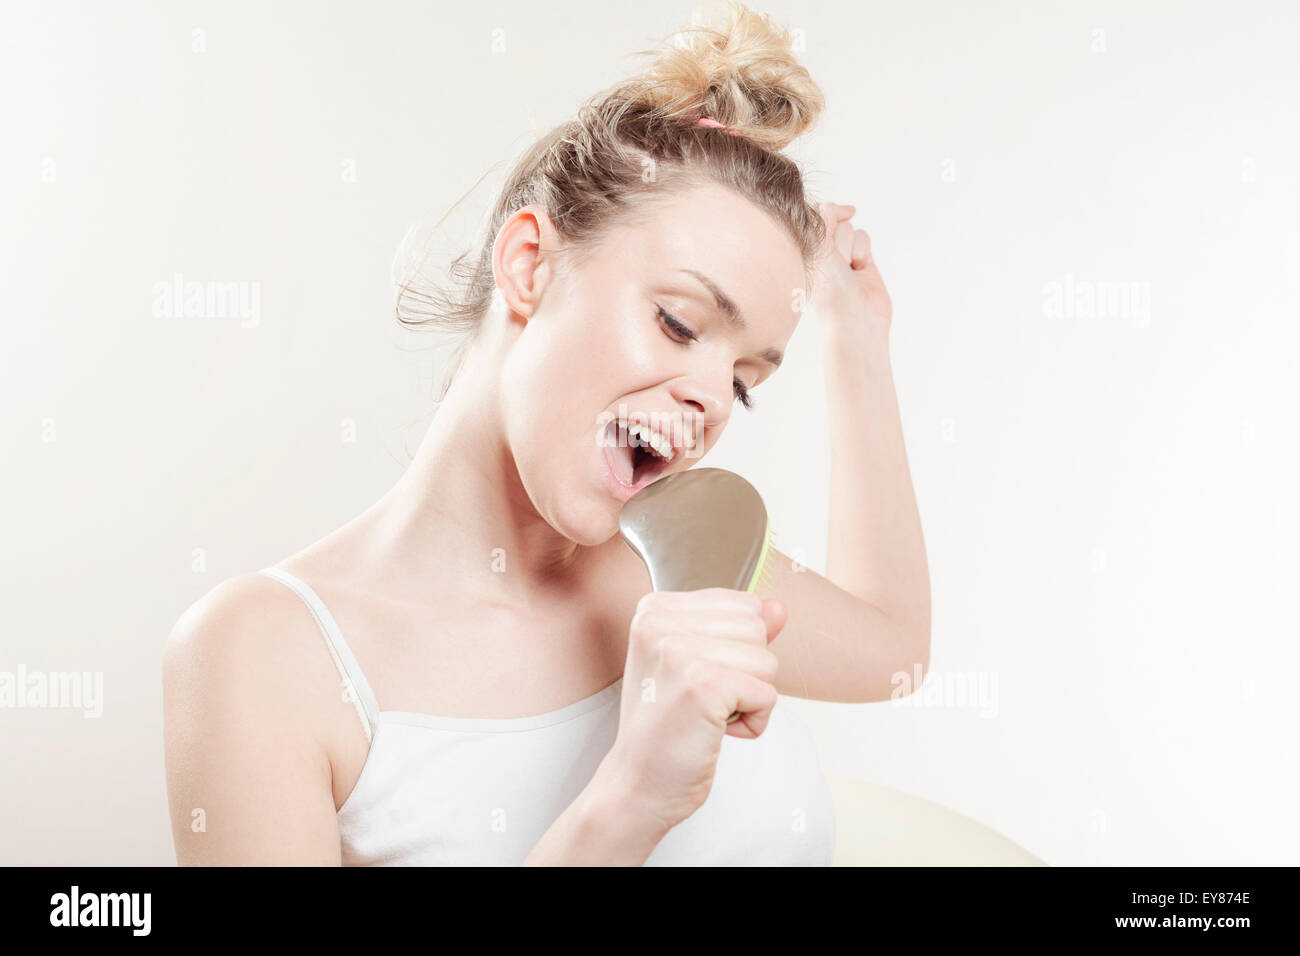 Young woman singing into hairbrush - Stock Image